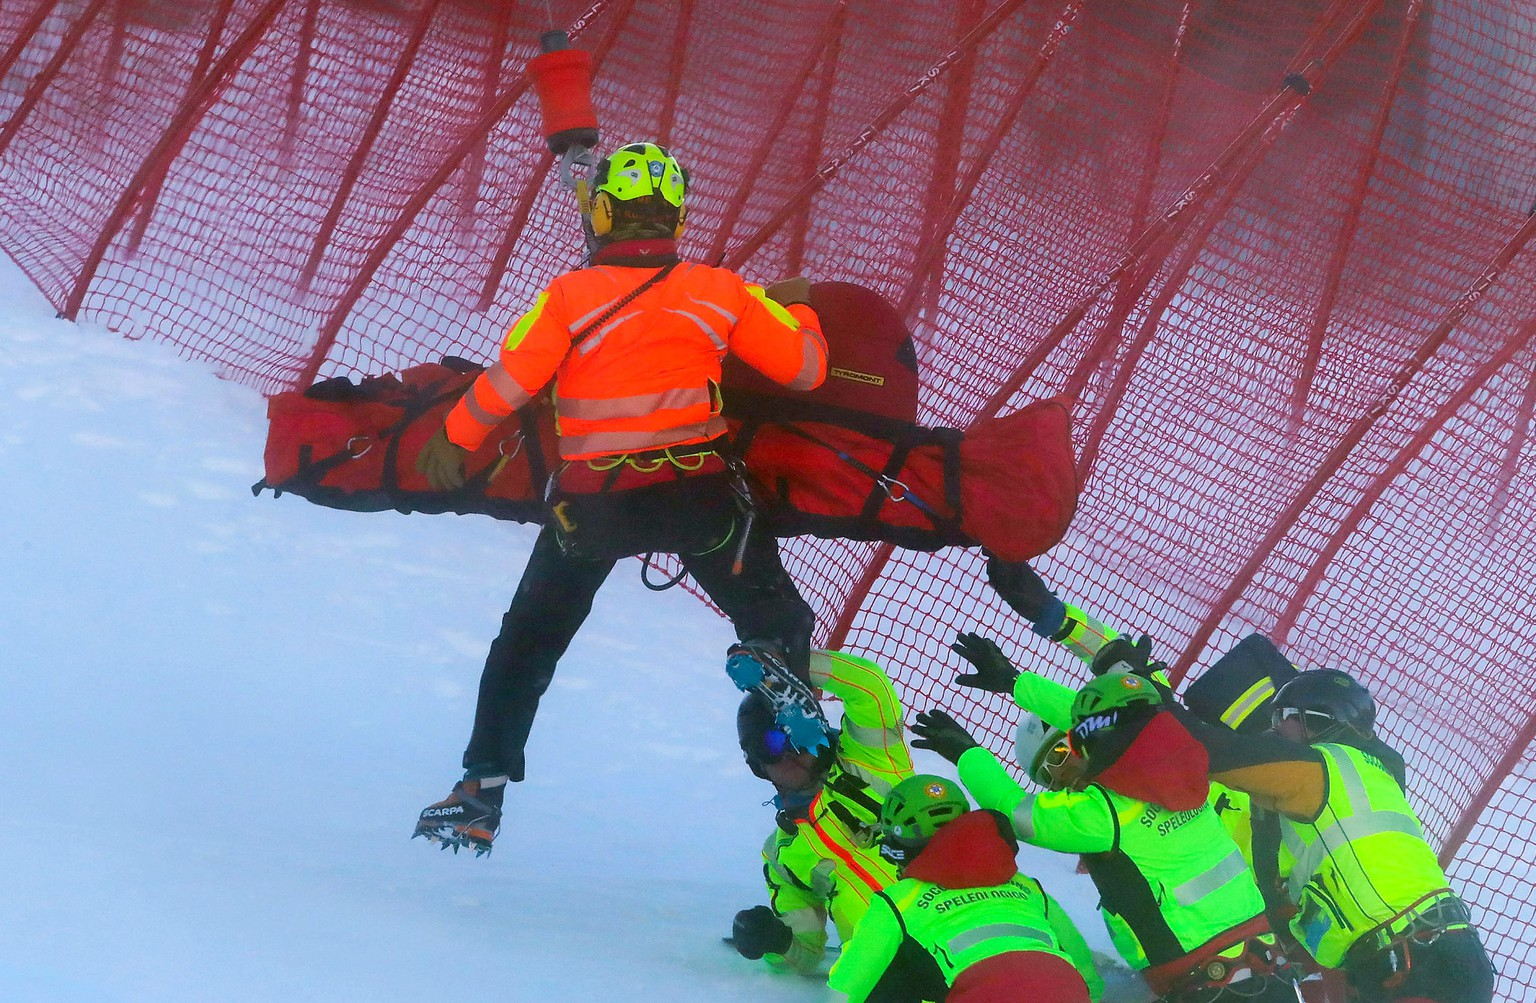 epaselect epaselect epa08093713 Hannes Reichelt of Austria is lifted on a helicopter after crashing during the Men's Downhill race at the FIS Alpine Skiing World Cup in Bormio, Italy, 28 December 2019. Reichelt was seriously injured in the Downhill race. According to reports on 29 December 2019, he suffers from a tear of the anterior cruciate ligament.  EPA/ANDREA SOLERO